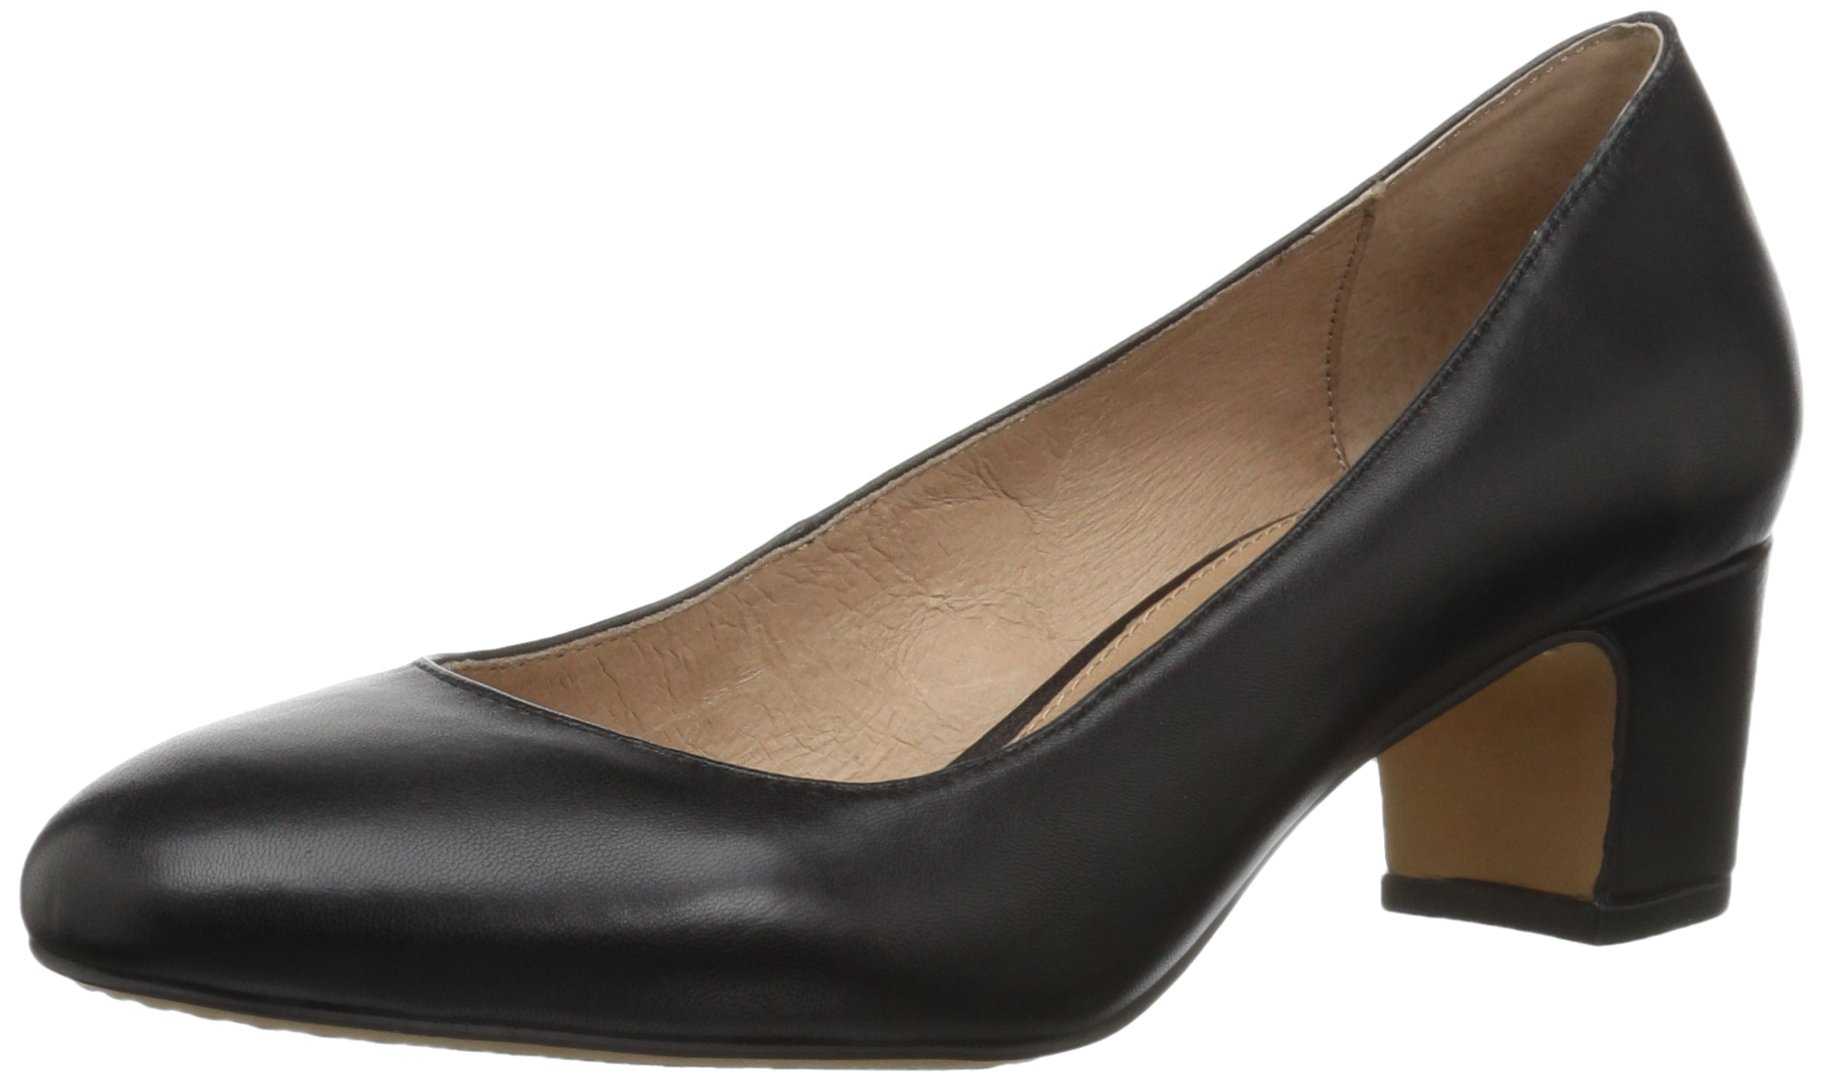 206 Collective Women's Merritt Round Toe Block Heel Low Pump, Black Leather, 10.5 B US